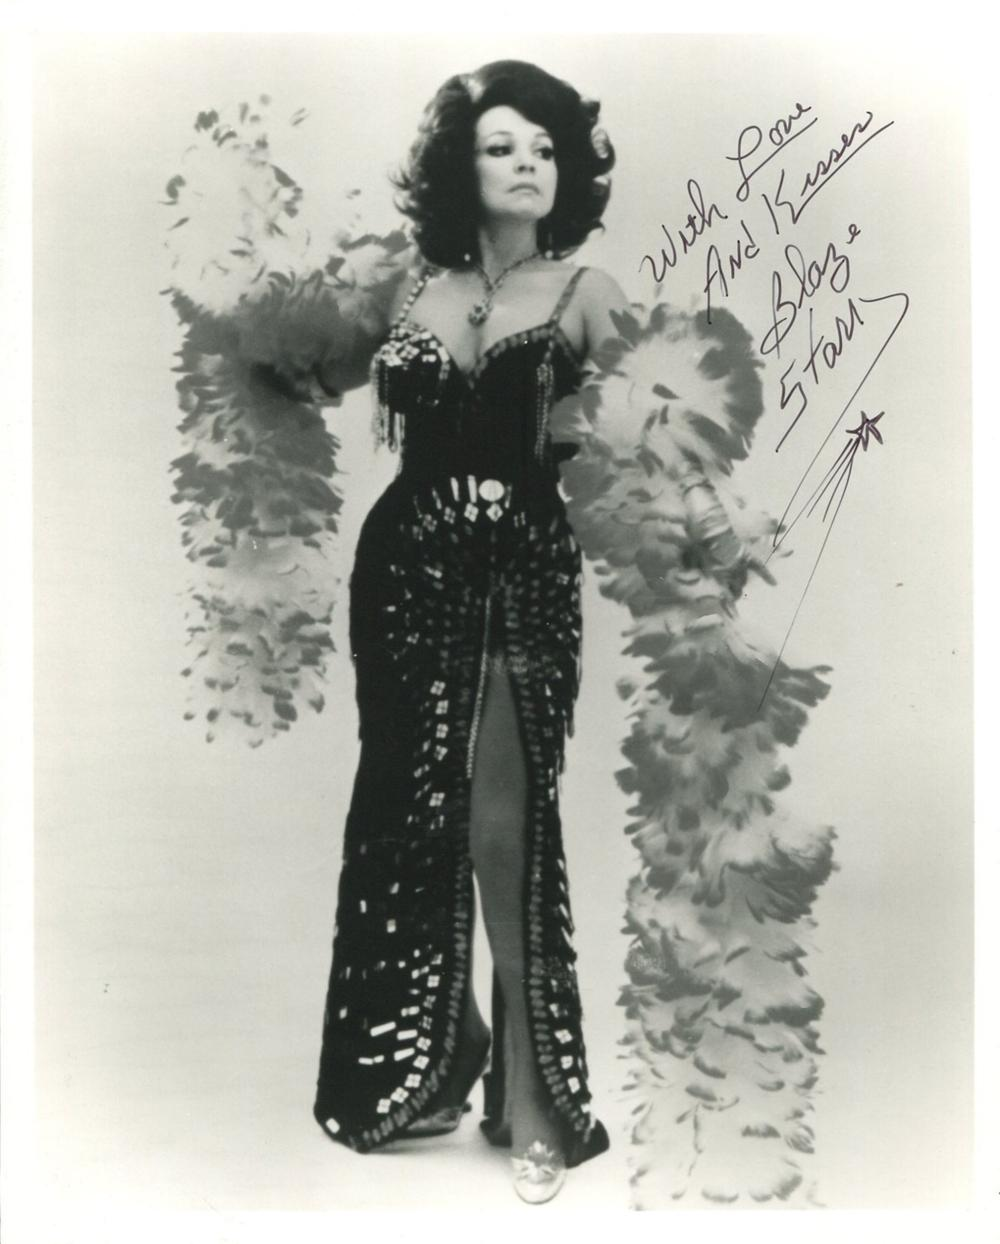 Burlesque queen and stripper Blaze Starr signed 8x10 photo, in the 1950's she was nicknamed 'The